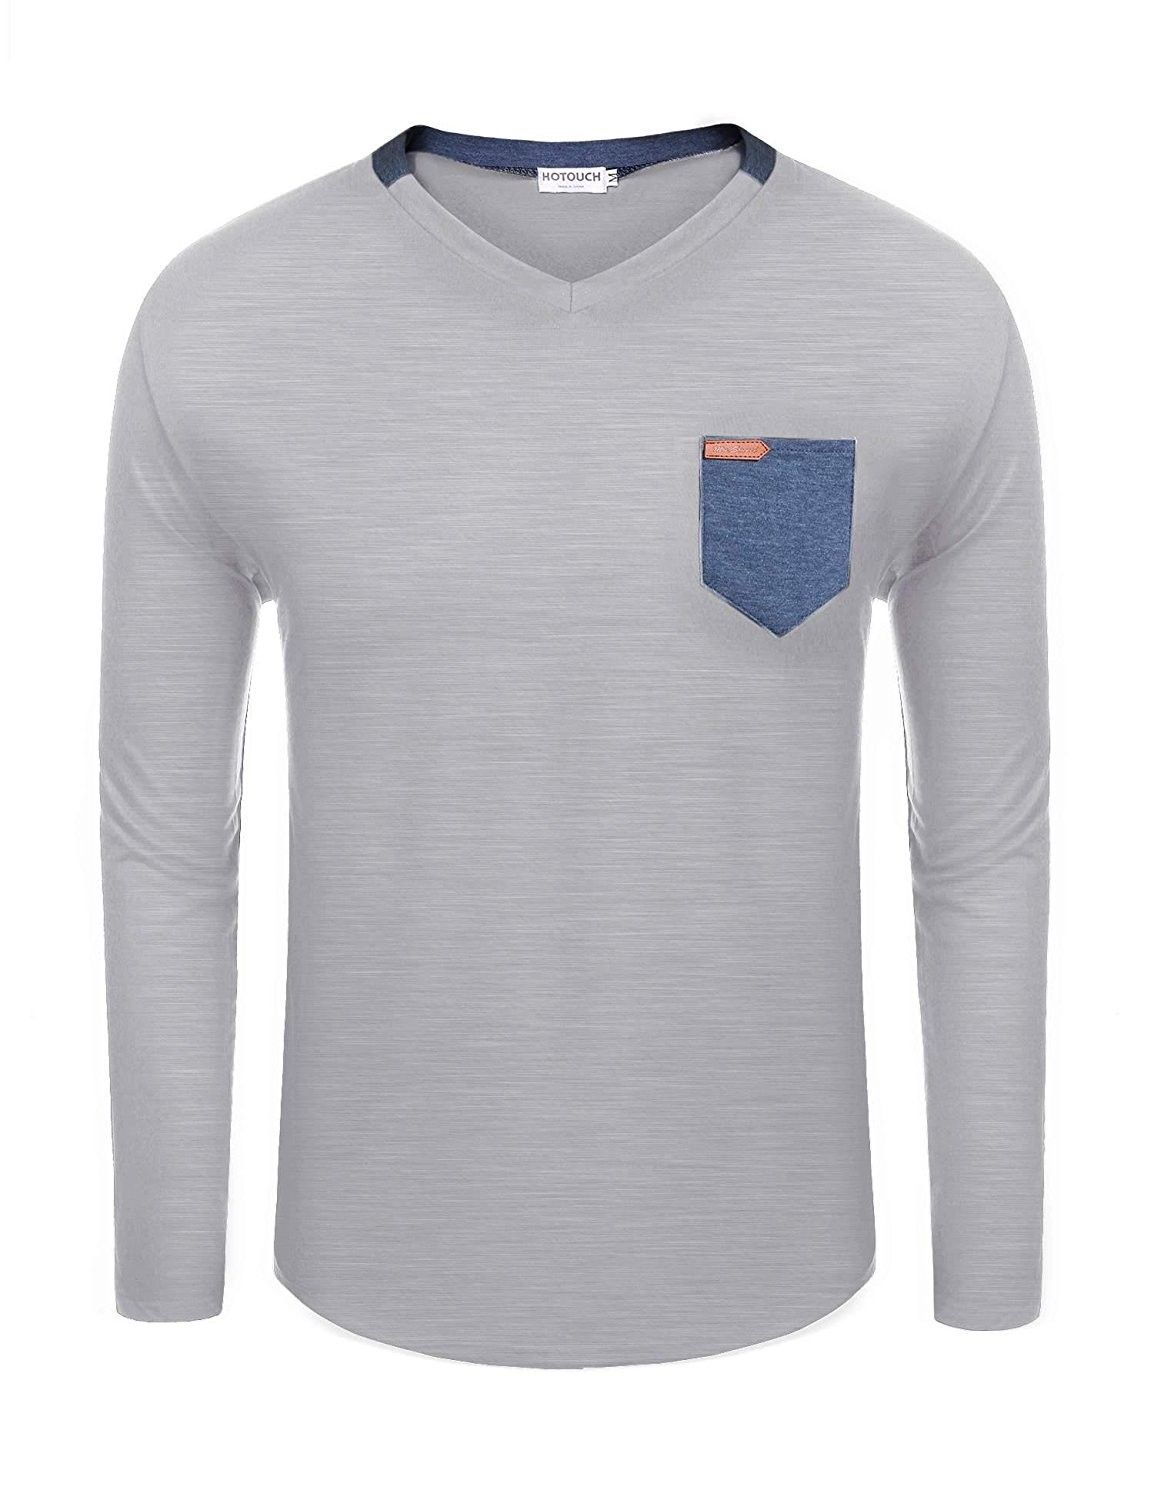 Mens Casual Cotton V Neck Long Sleeve T Shirts With Patchwork